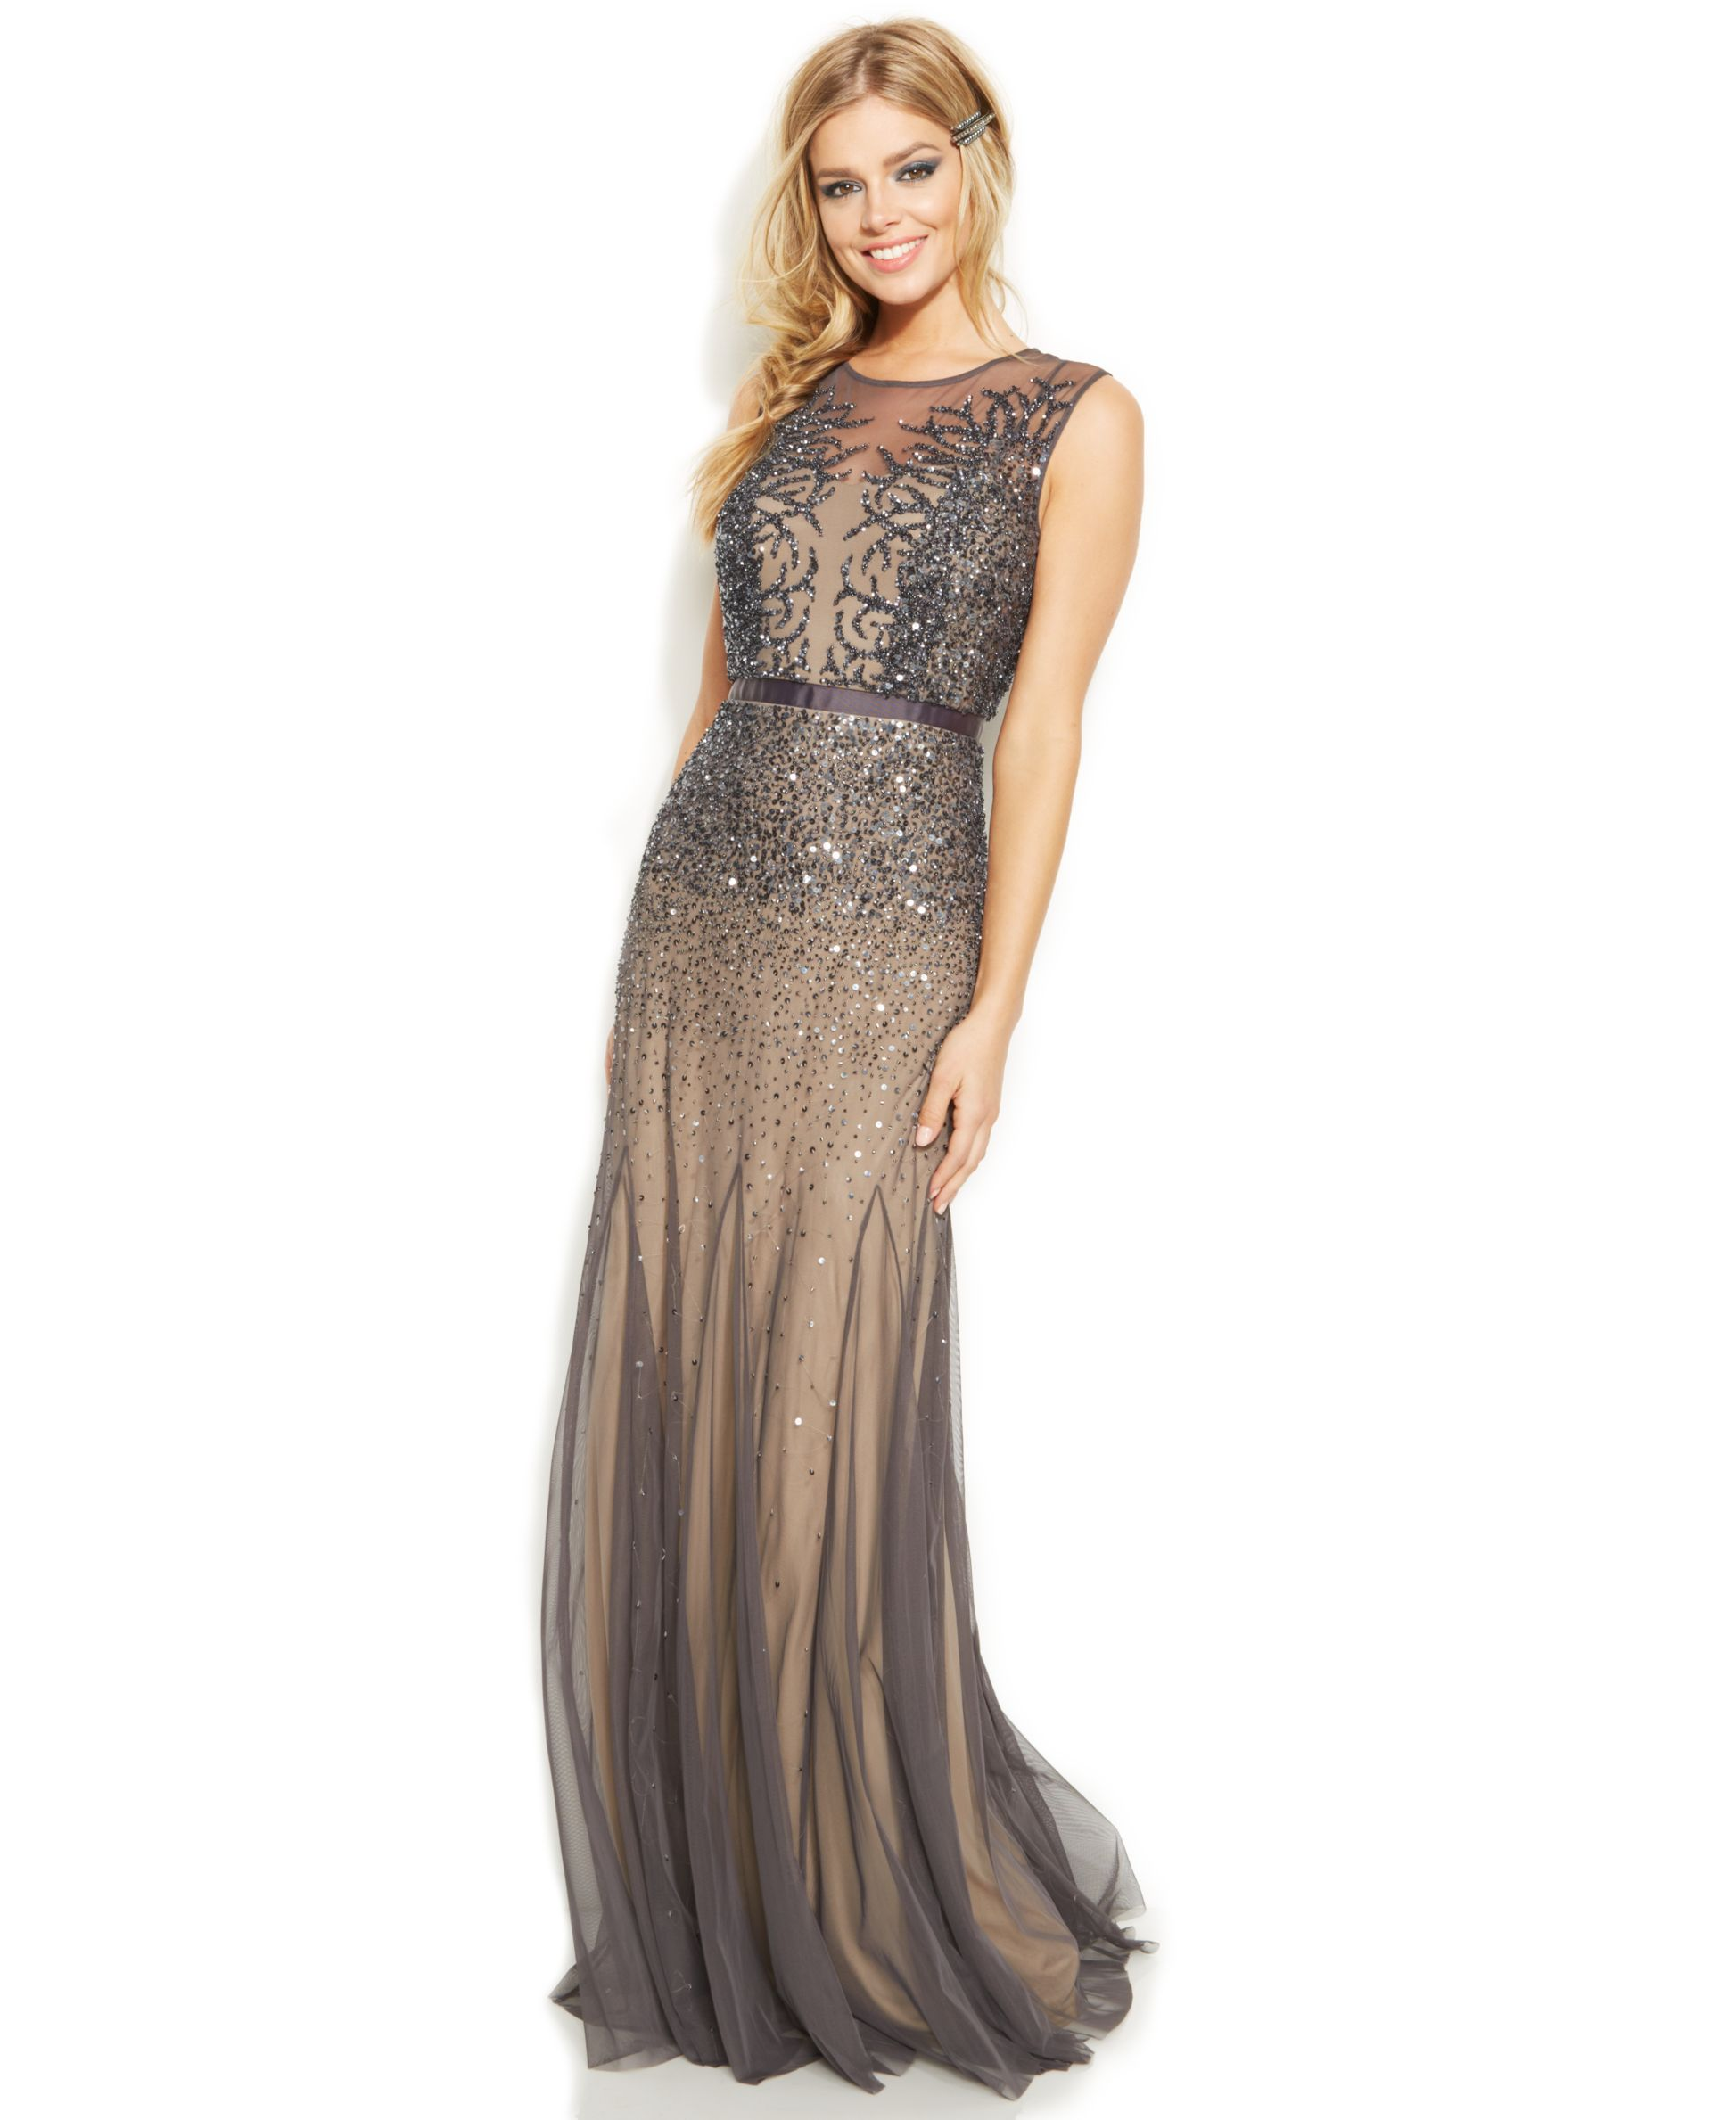 91e90652b Adrianna Papell Sleeveless Beaded Illusion Gown - Juniors Shop All Prom  Dresses - Macy s